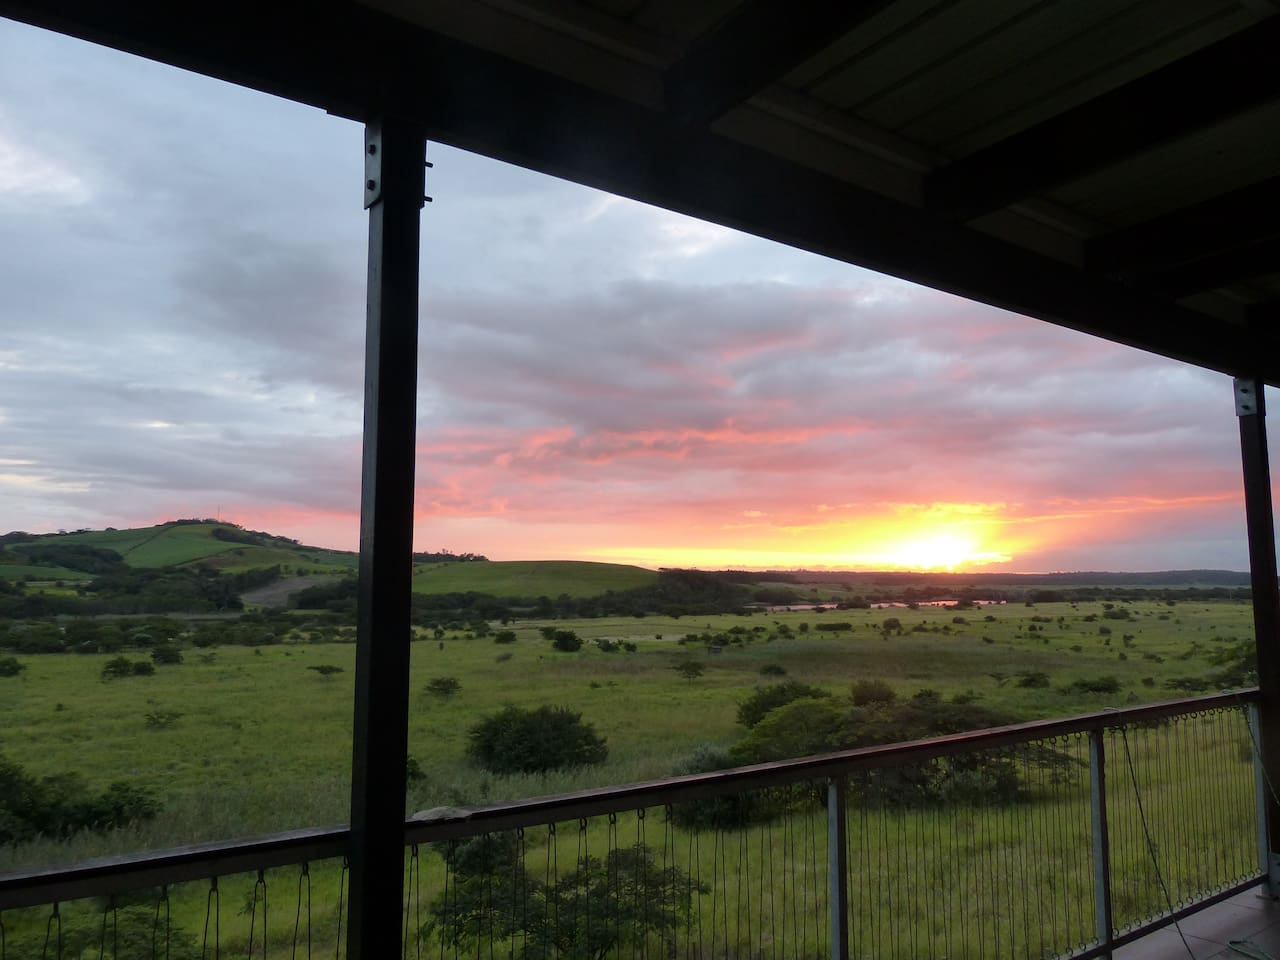 Sunrises from the verandah